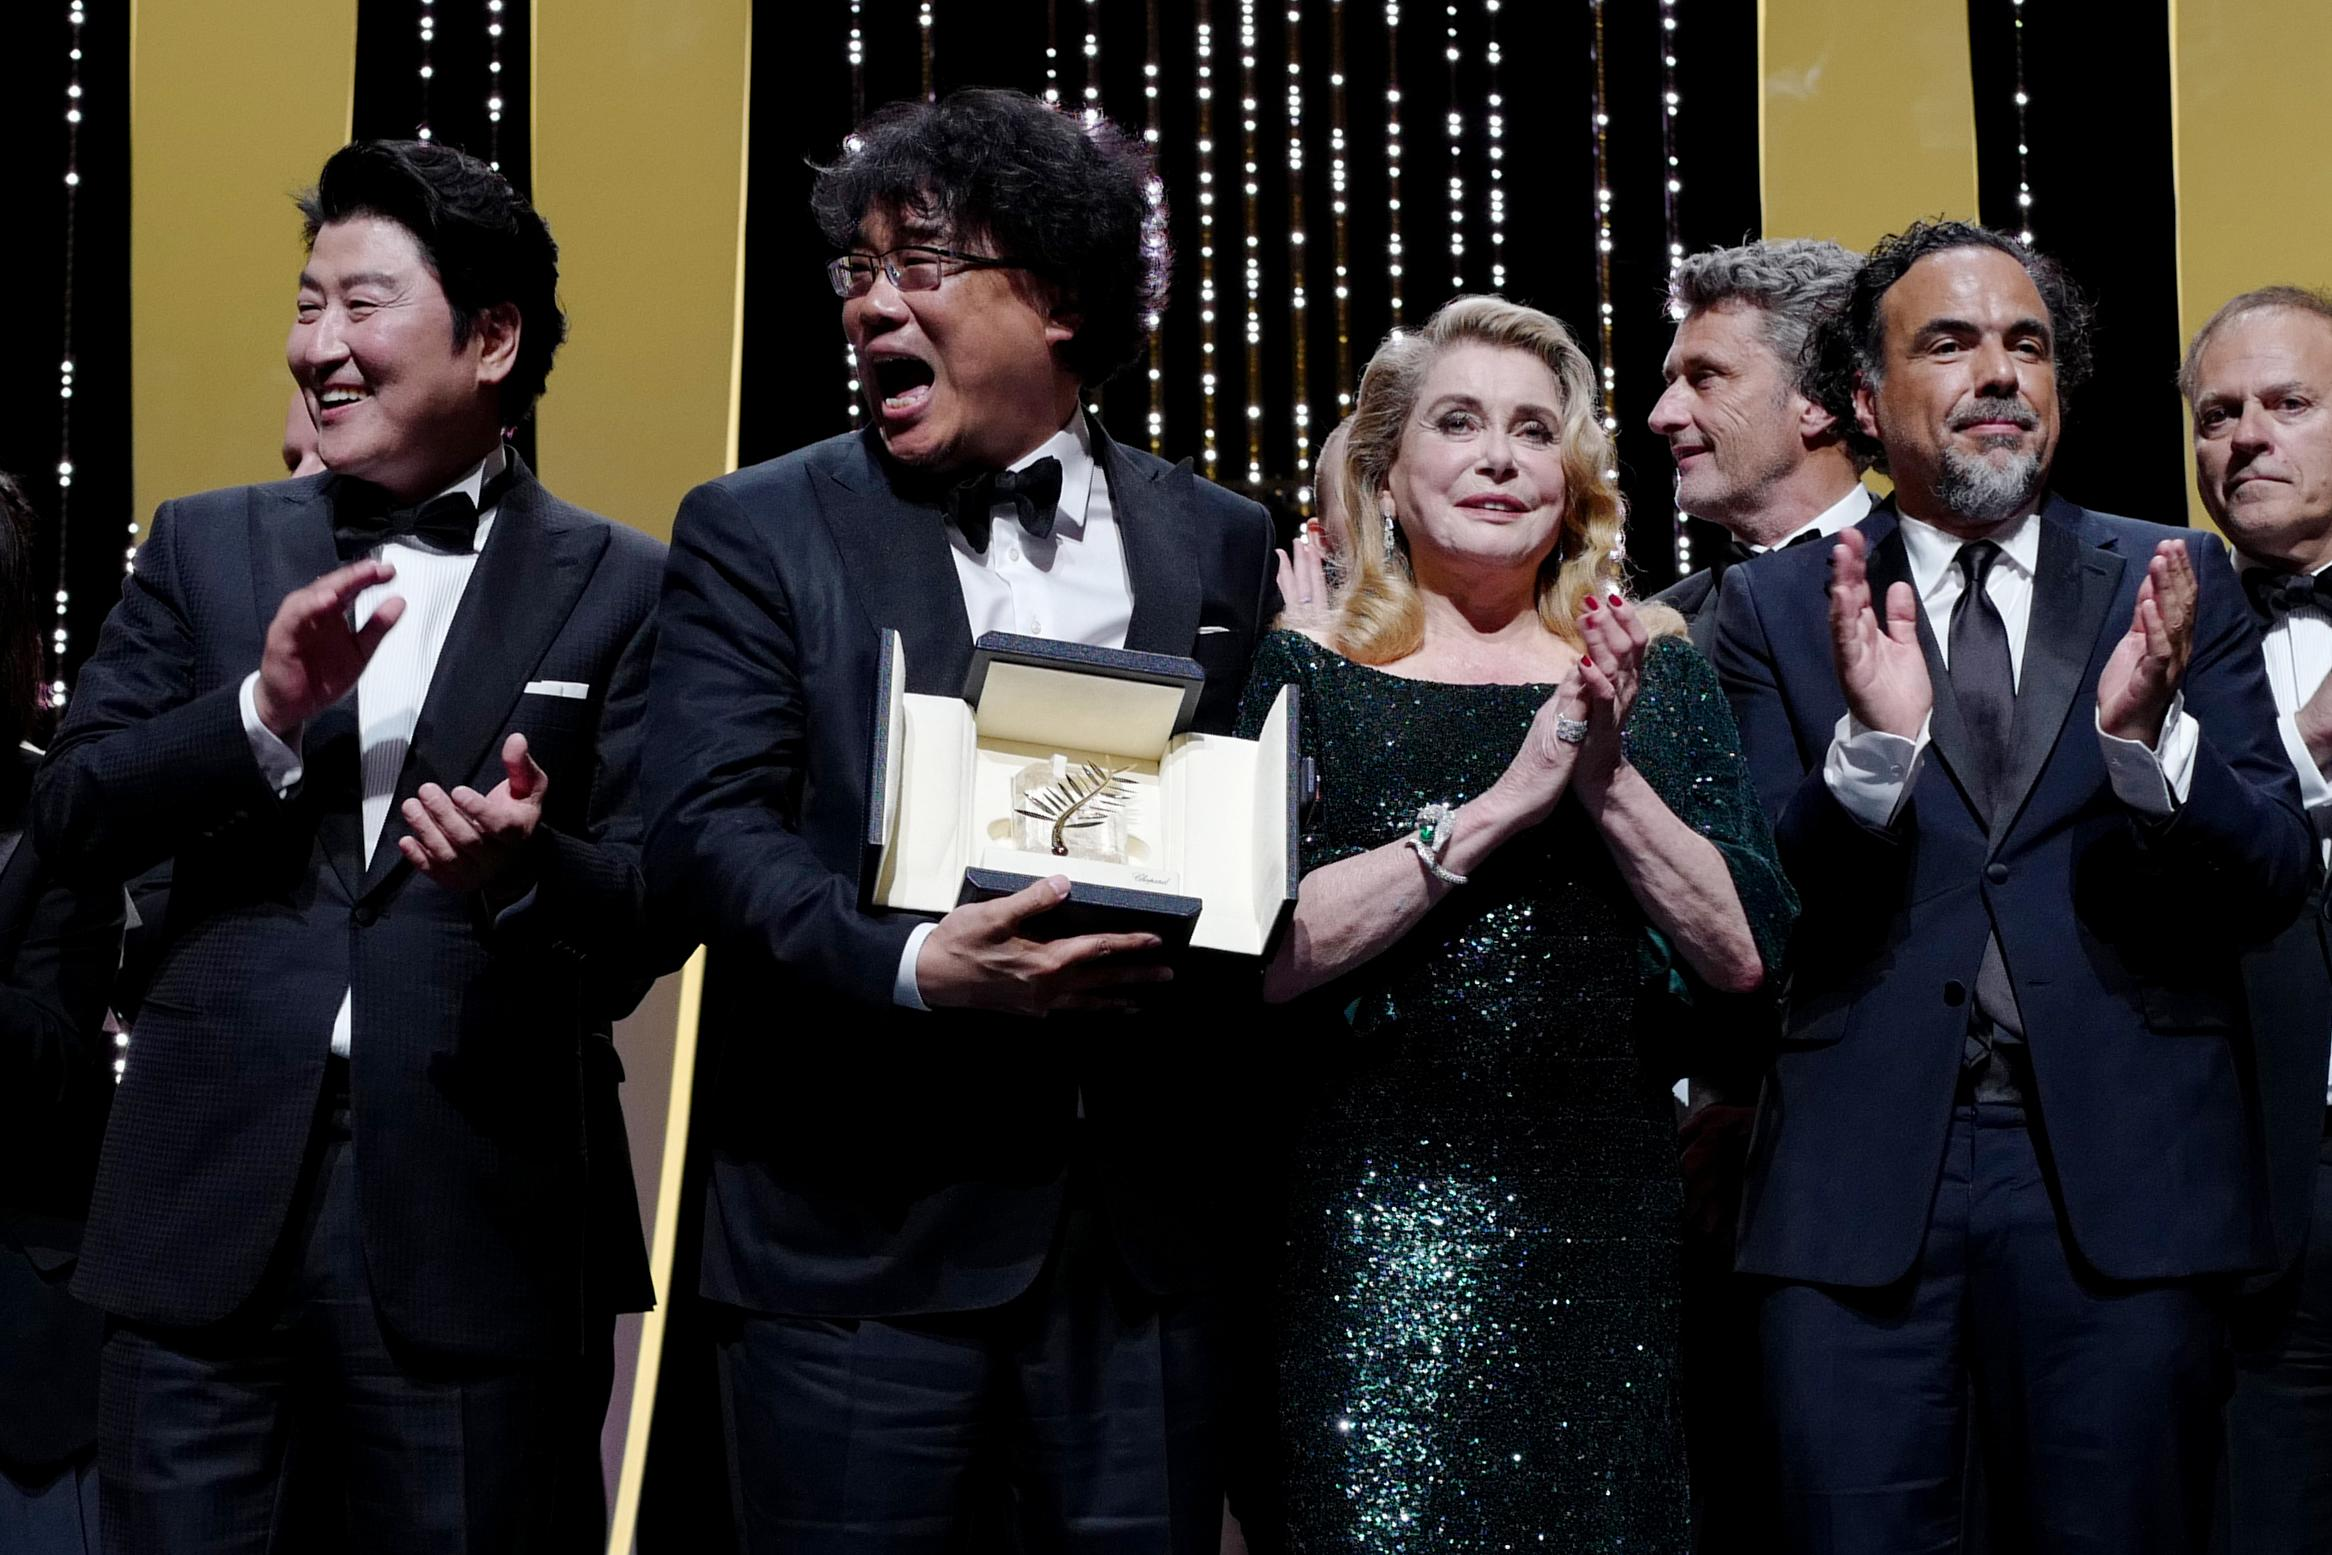 Parasites', South Korean comedy about class rage, wins Cannes gold